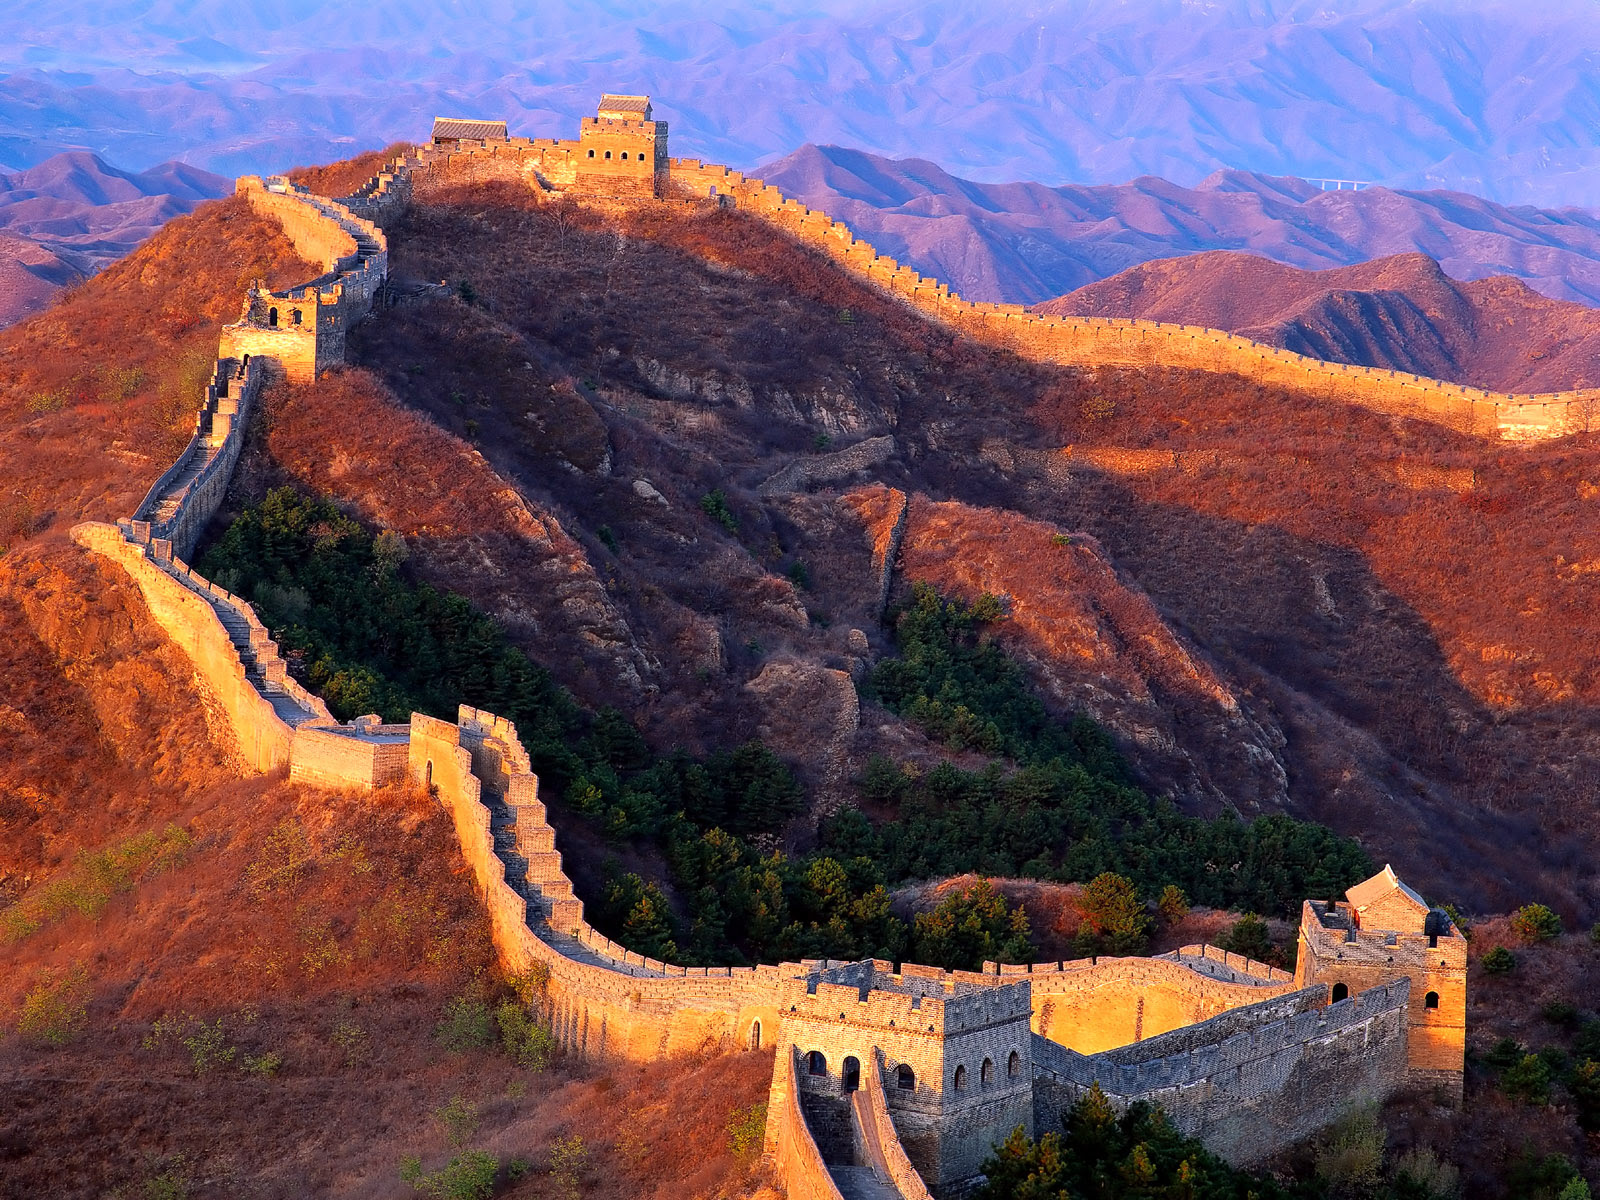 Purpose of The Great Wall - The Great Wall of China